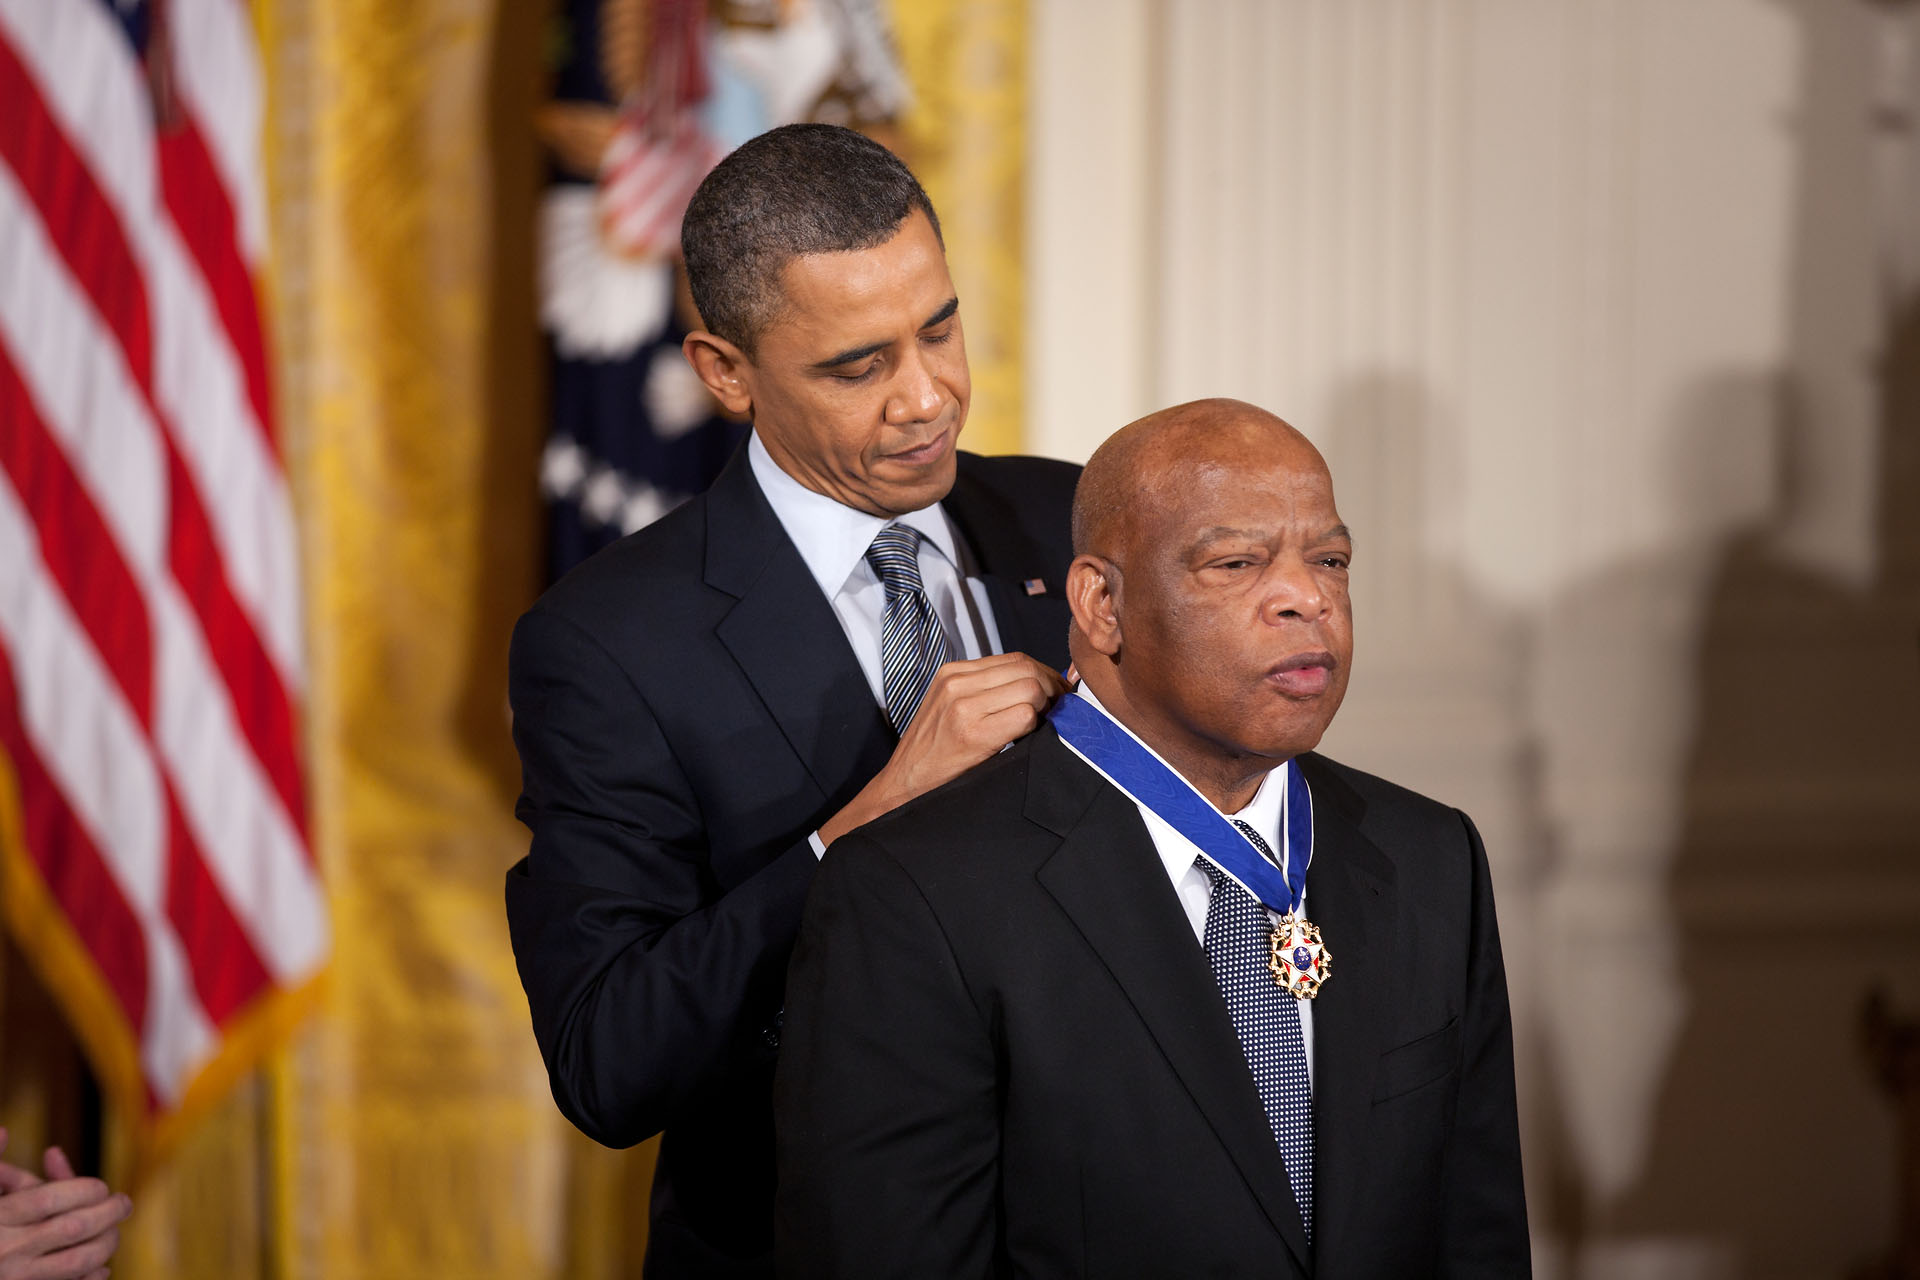 President Barack Obama awards the 2010 Presidential Medal of Freedom to John Lewis